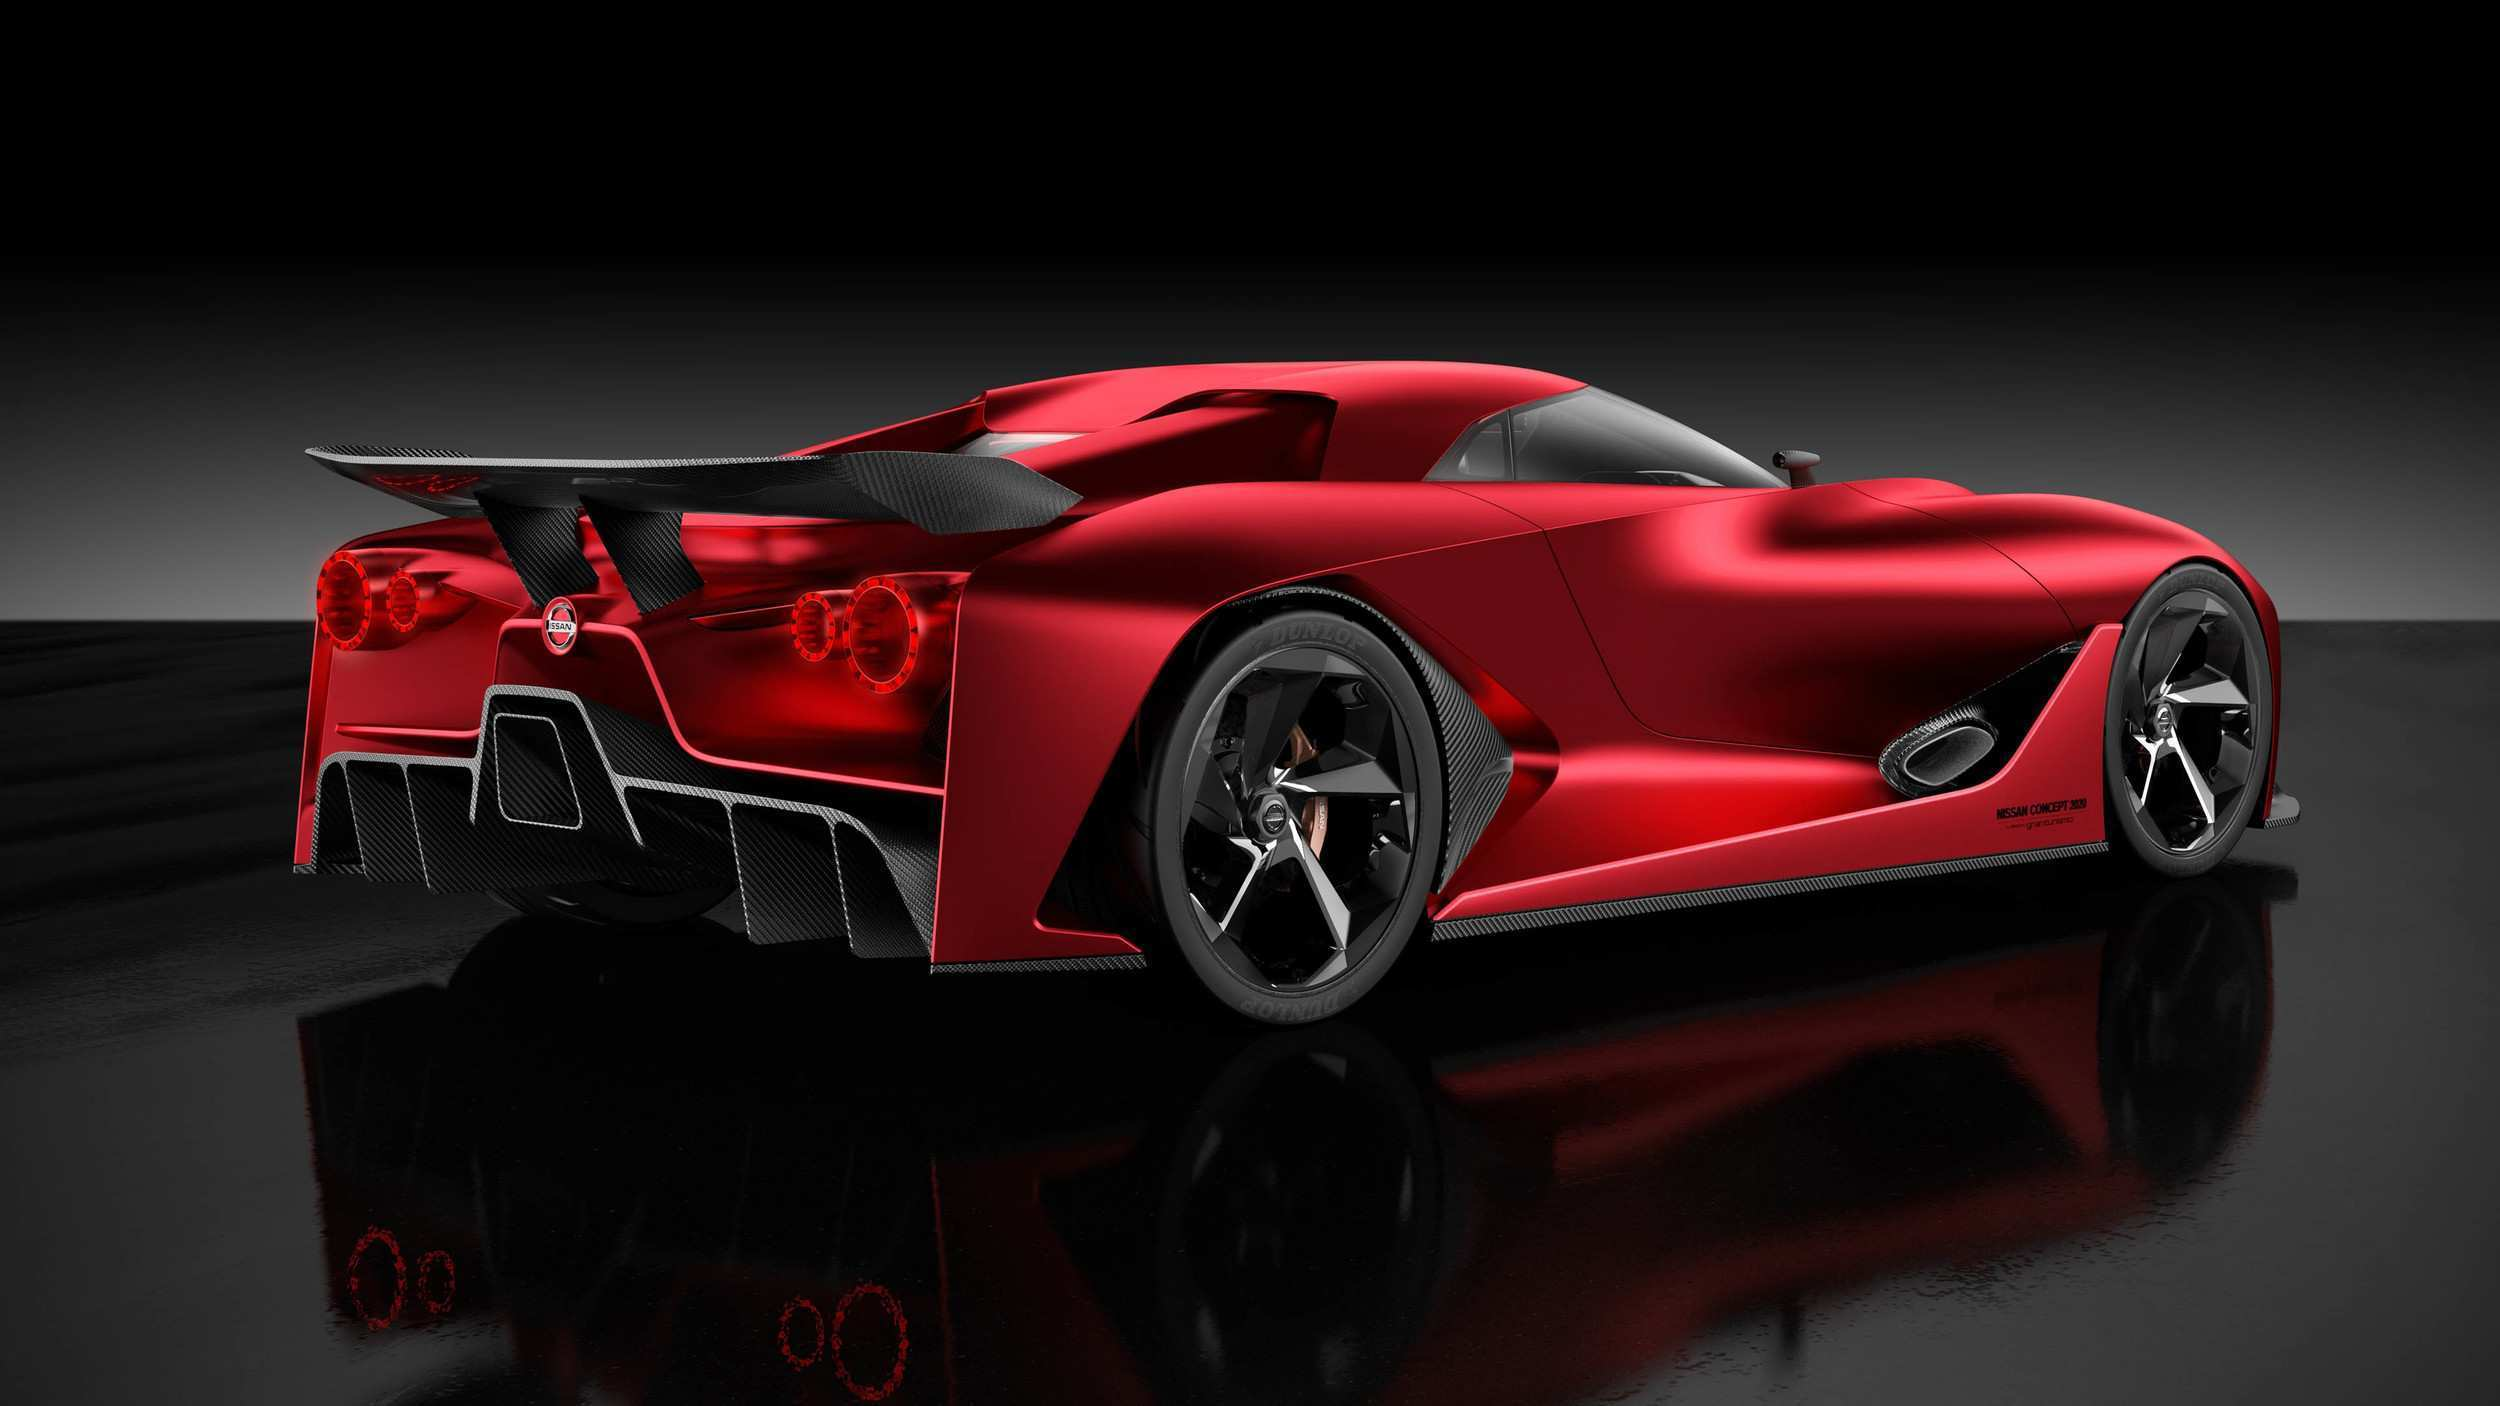 35 All New Nissan Concept 2020 Price Photos